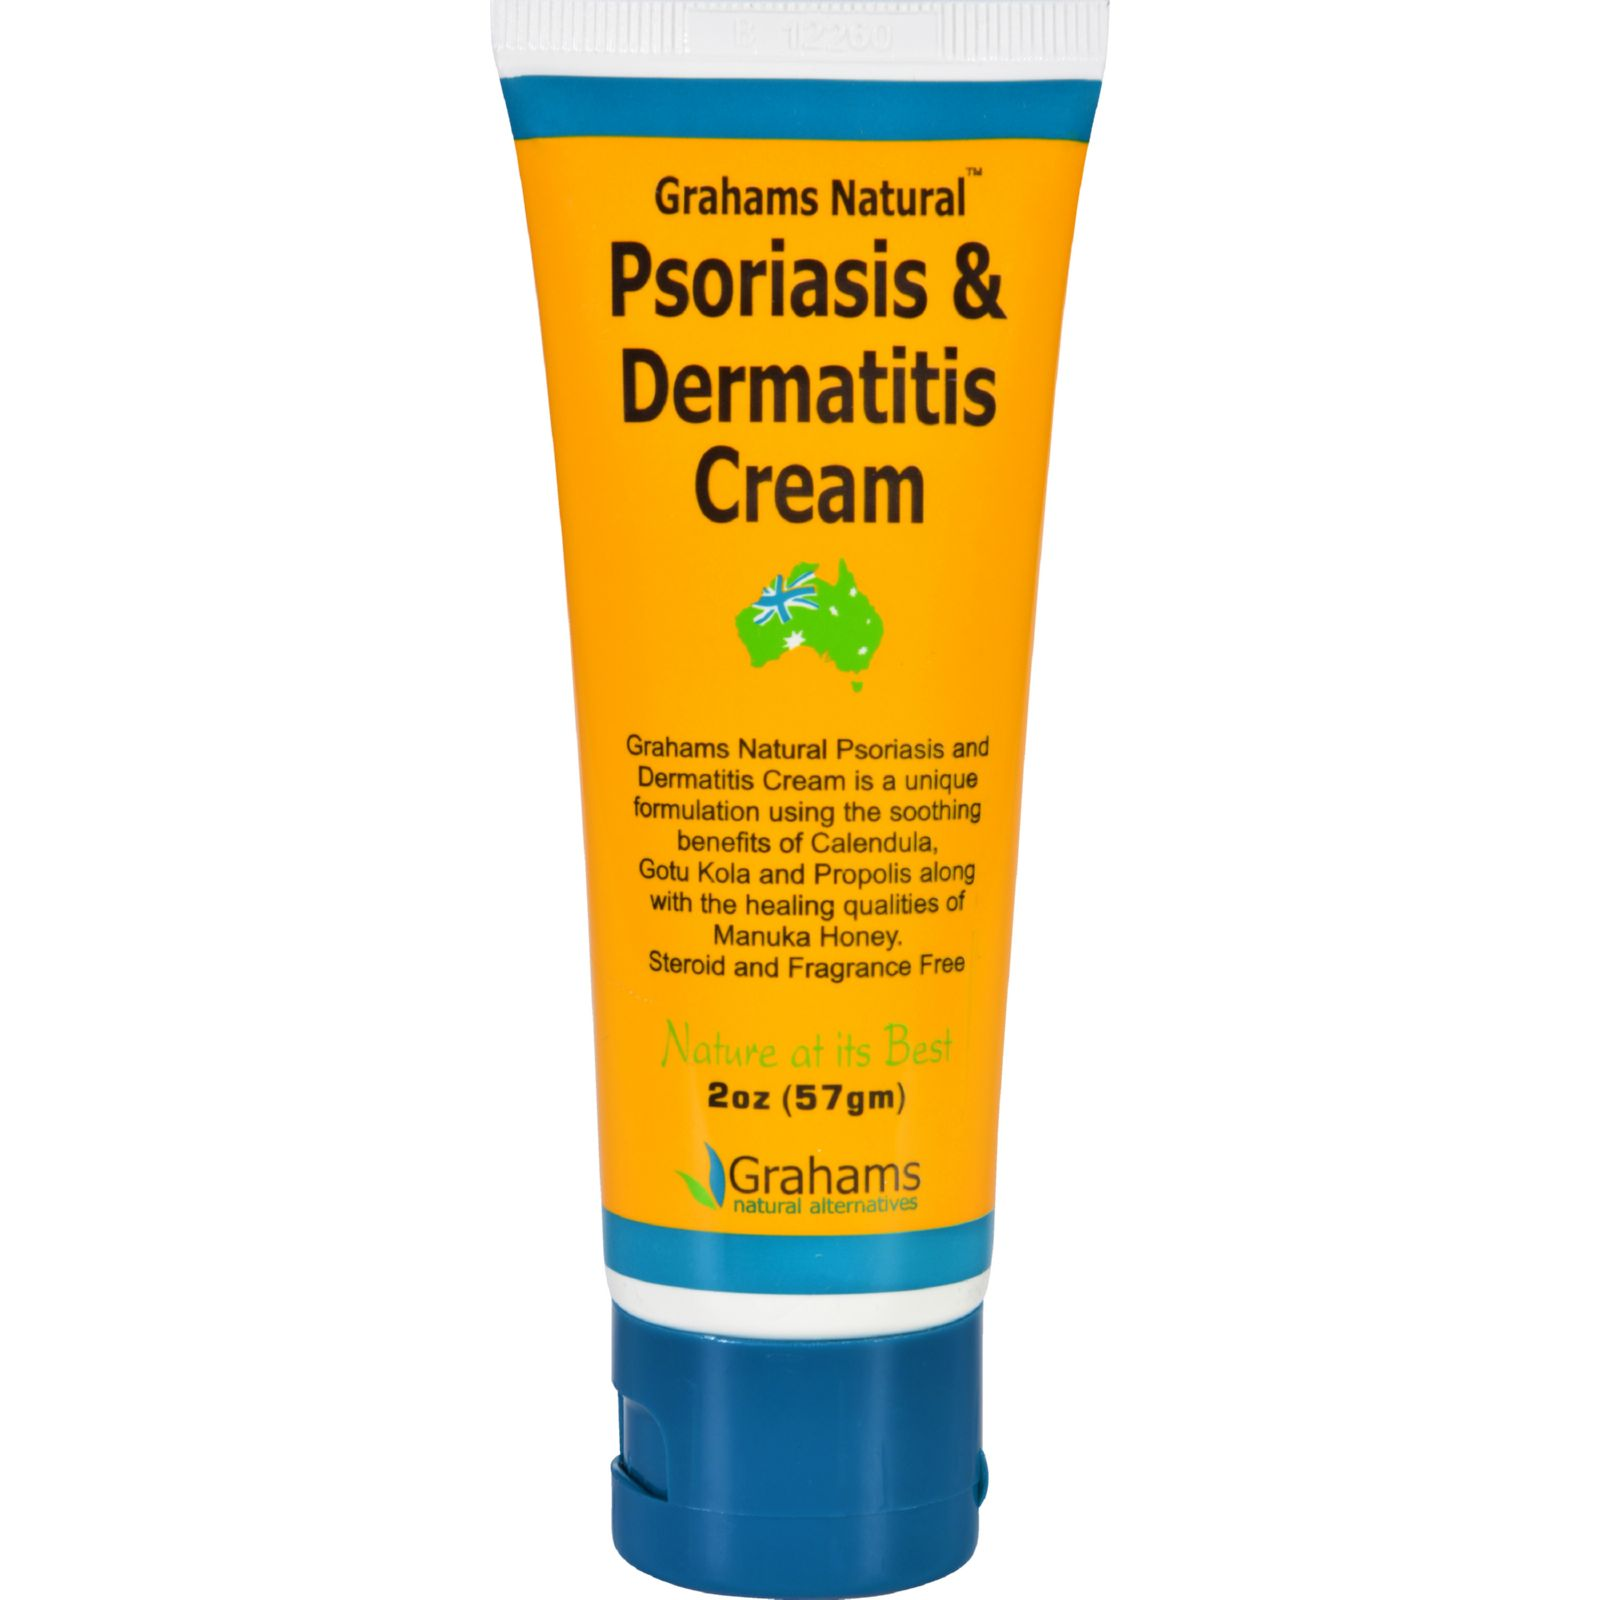 Grahams Natural Psoriasis and Dermatitis Cream - 2 oz